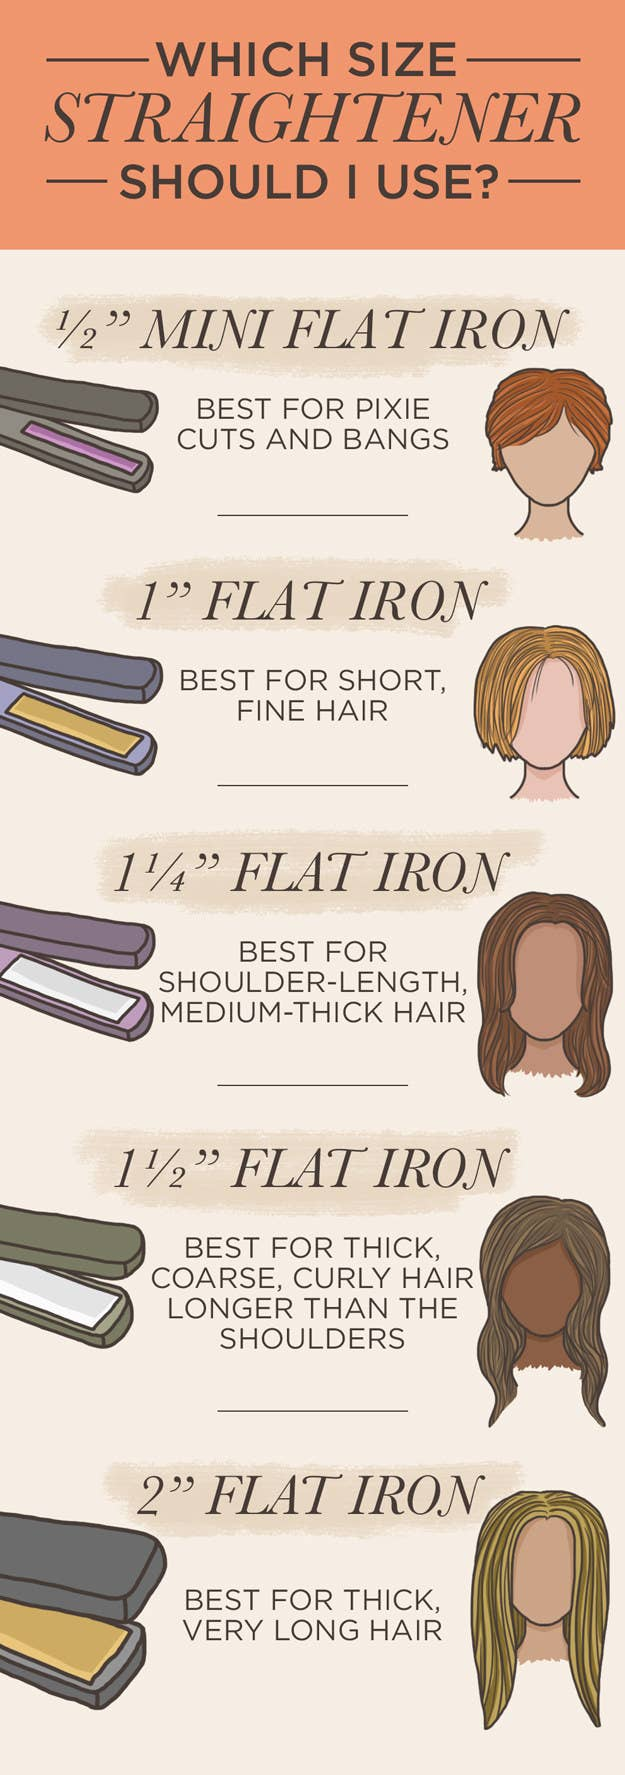 The general rule is the shorter the hair, the thinner the flat iron. For people with longer, thicker hair, a wide flat iron is best.